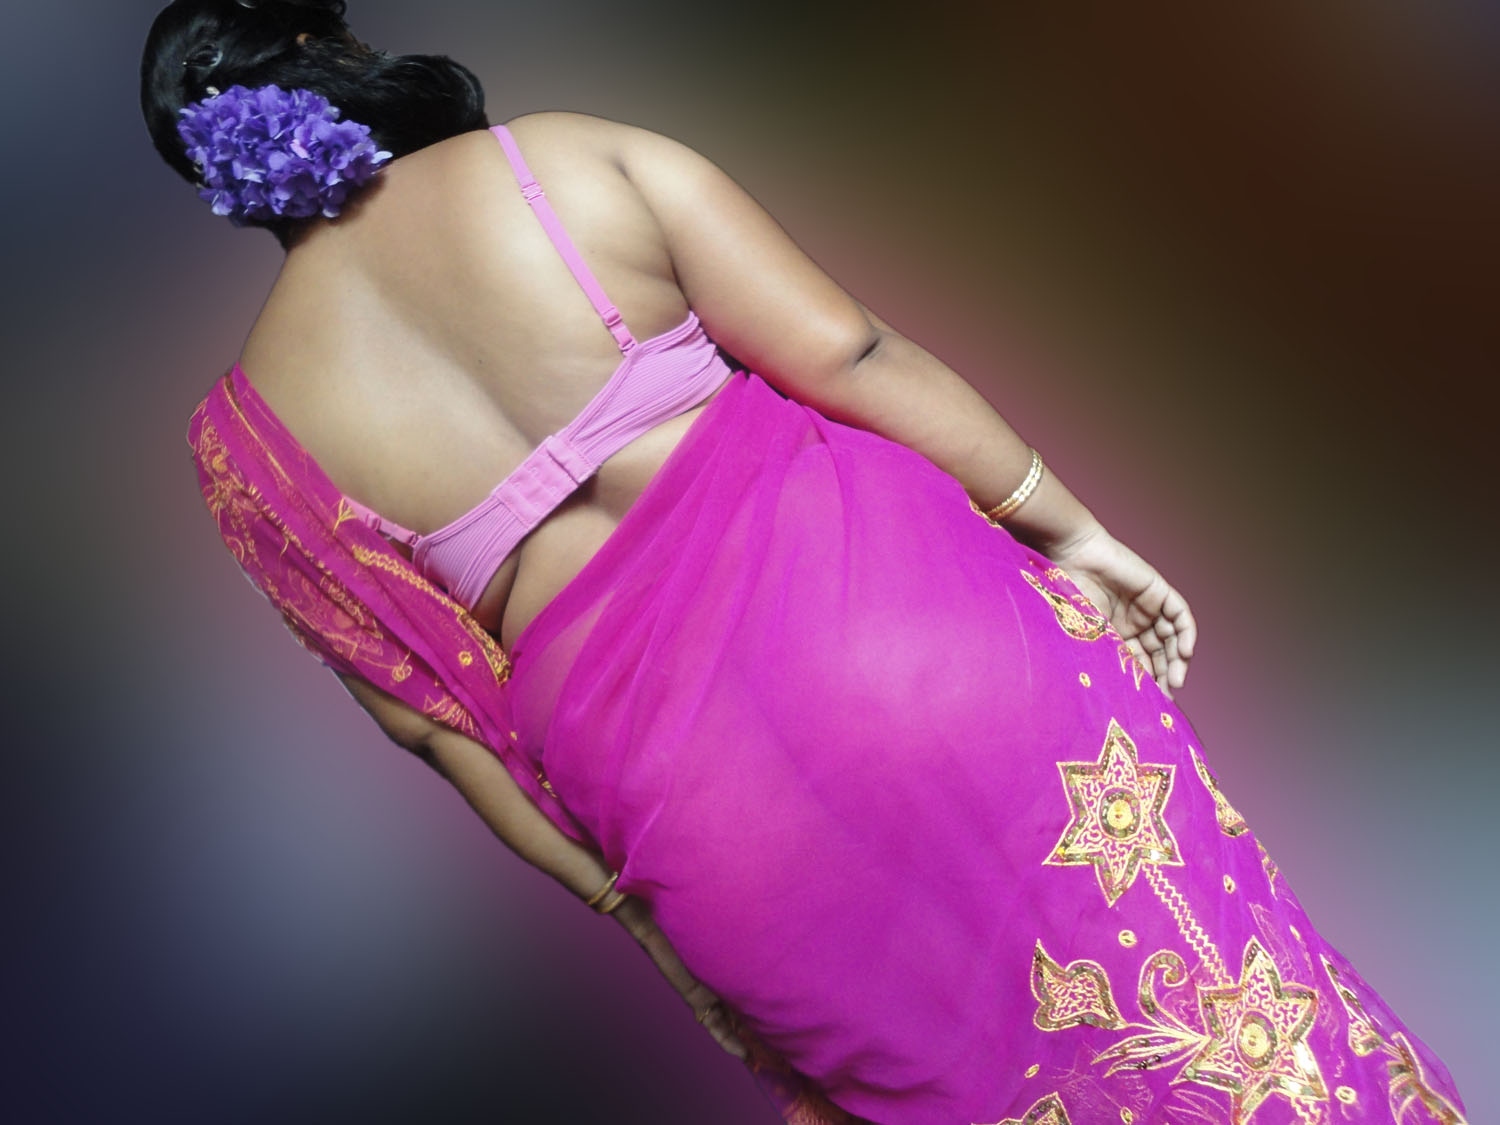 Speaking, Desi indian bhabhi removing saree remarkable, rather